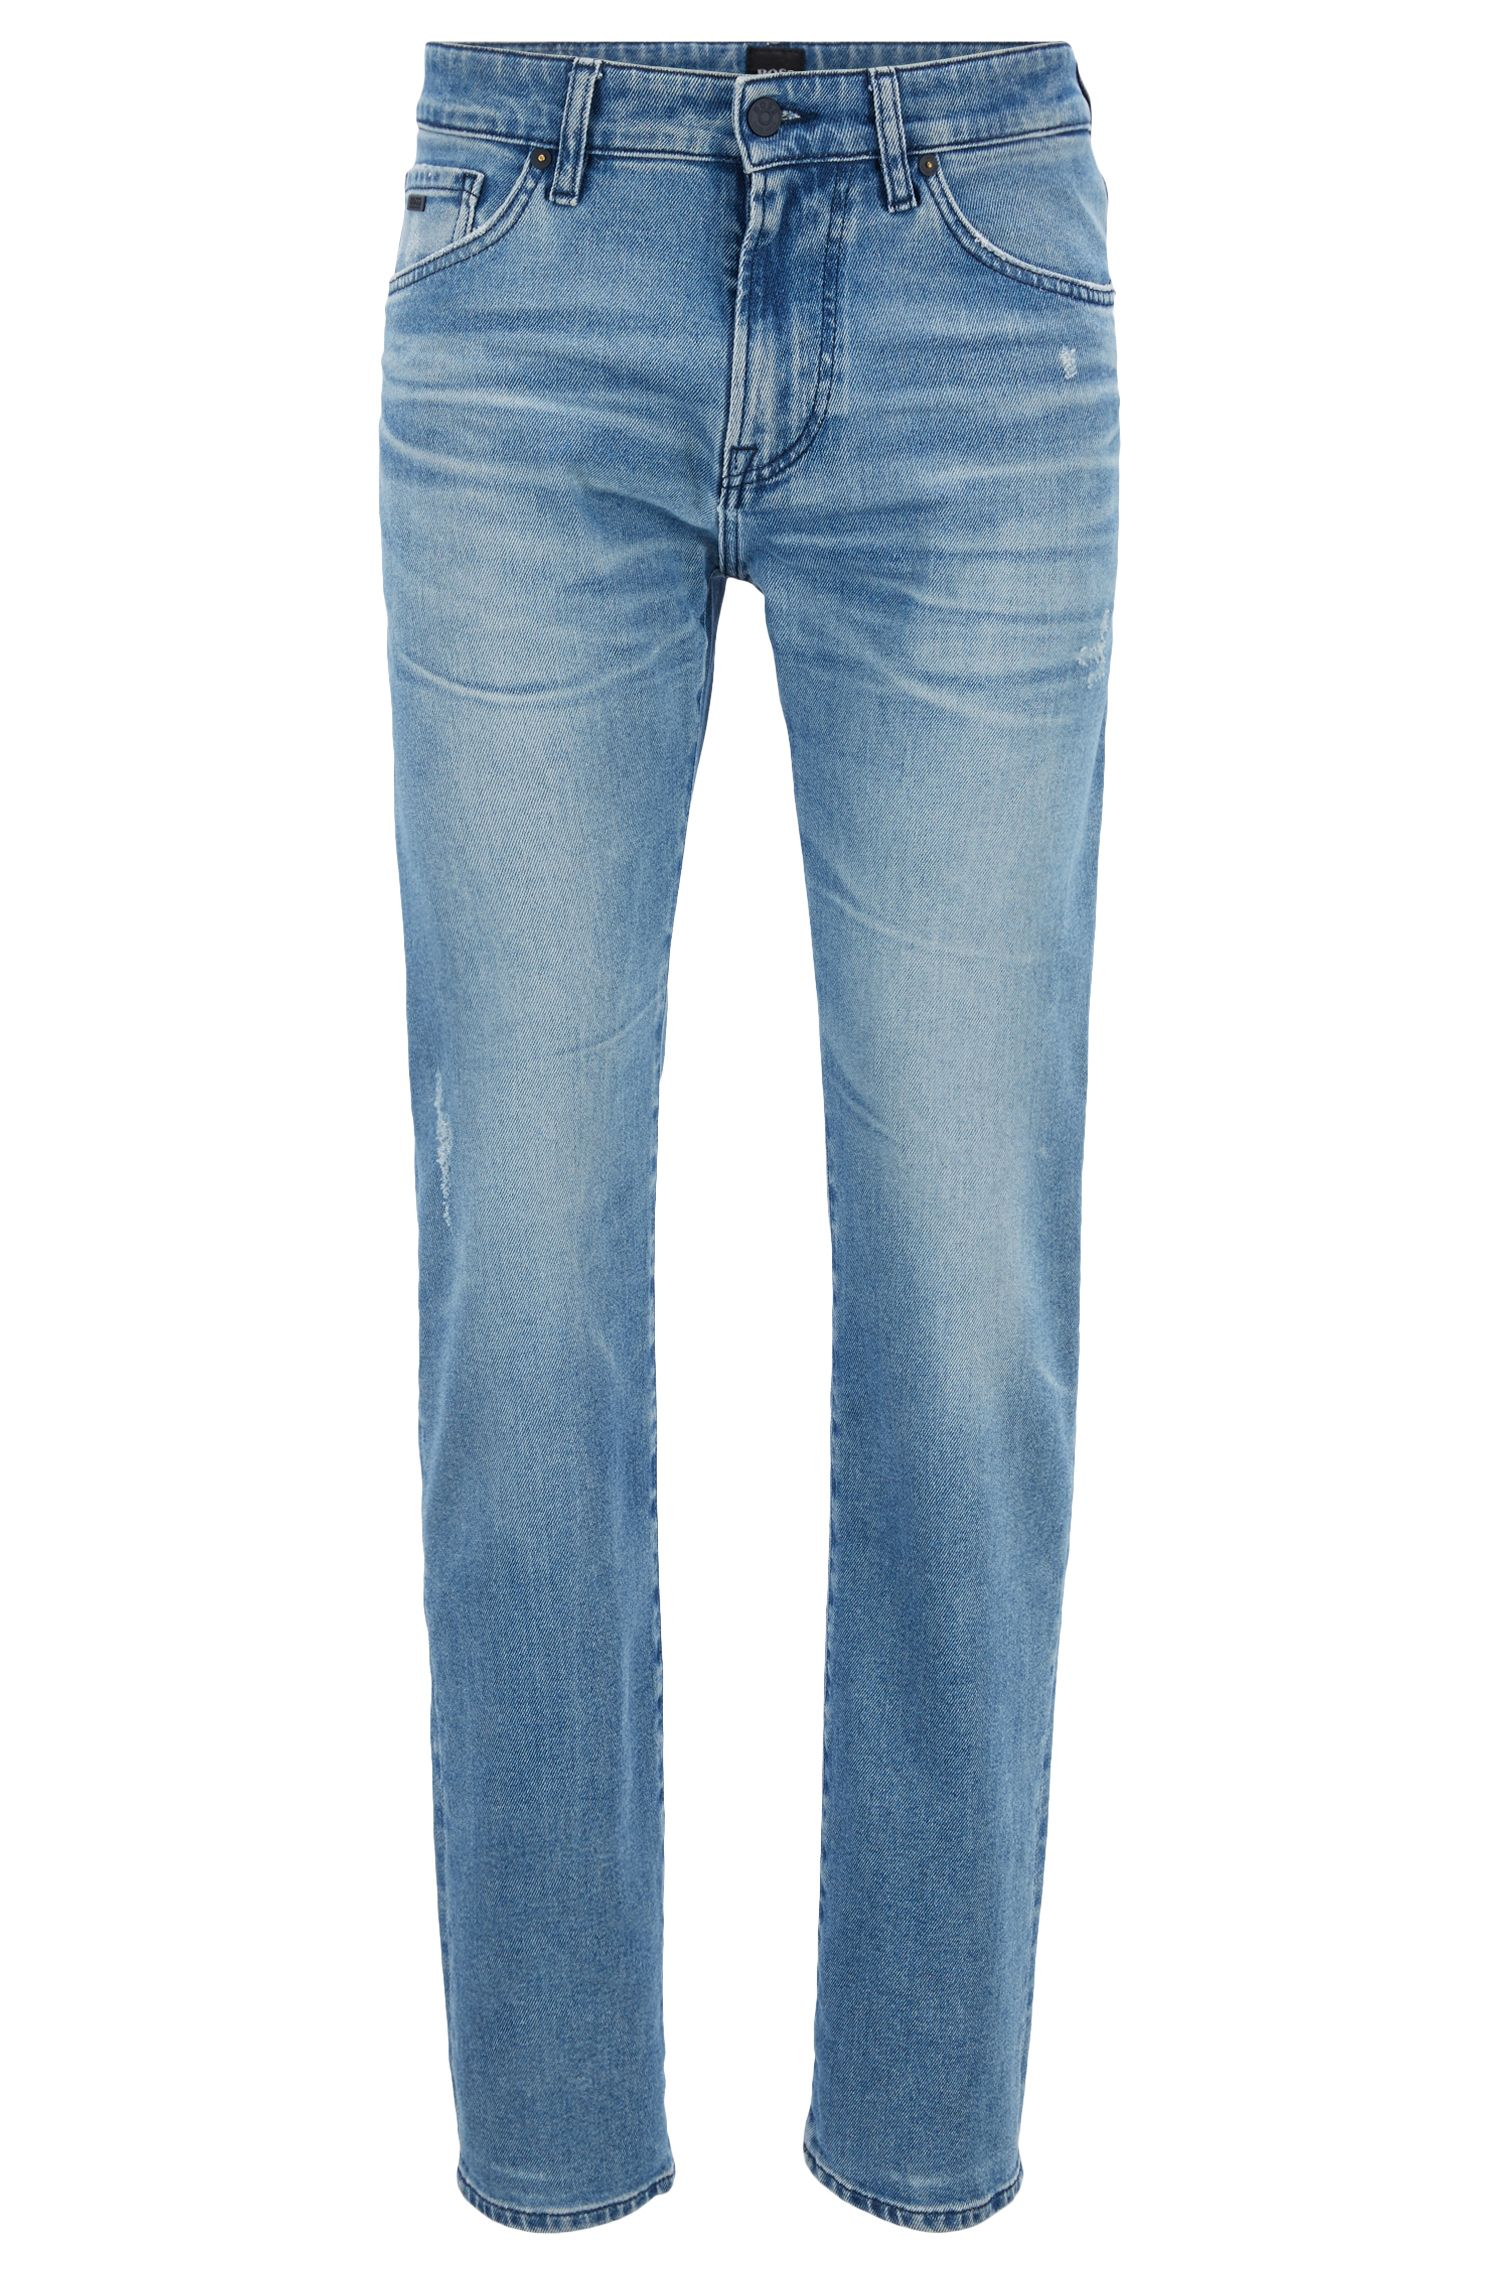 Jean Regular Fit en denim stretch respectueux de l'environnement, Bleu